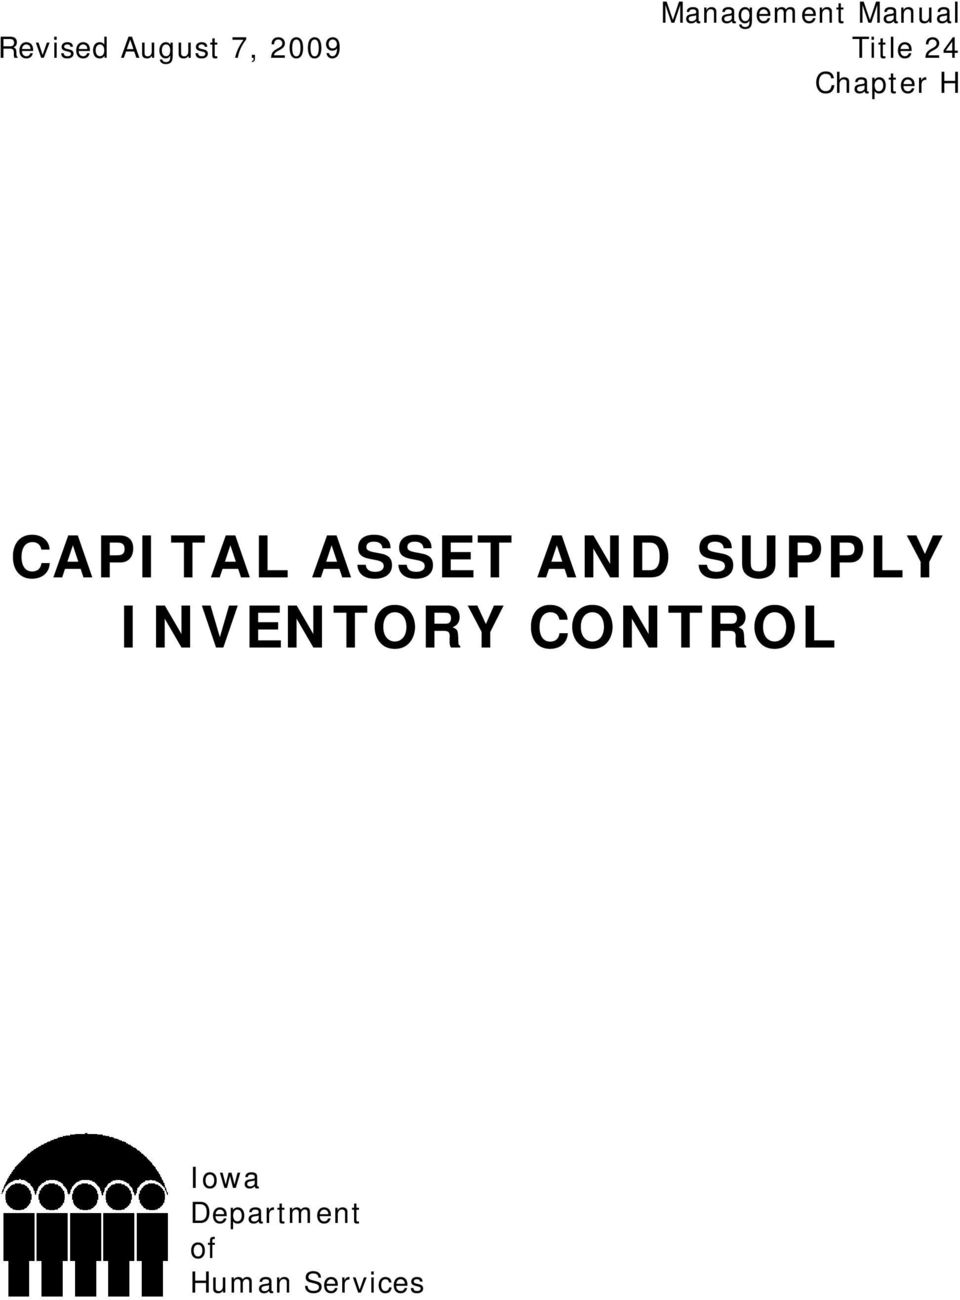 CAPITAL ASSET AND SUPPLY